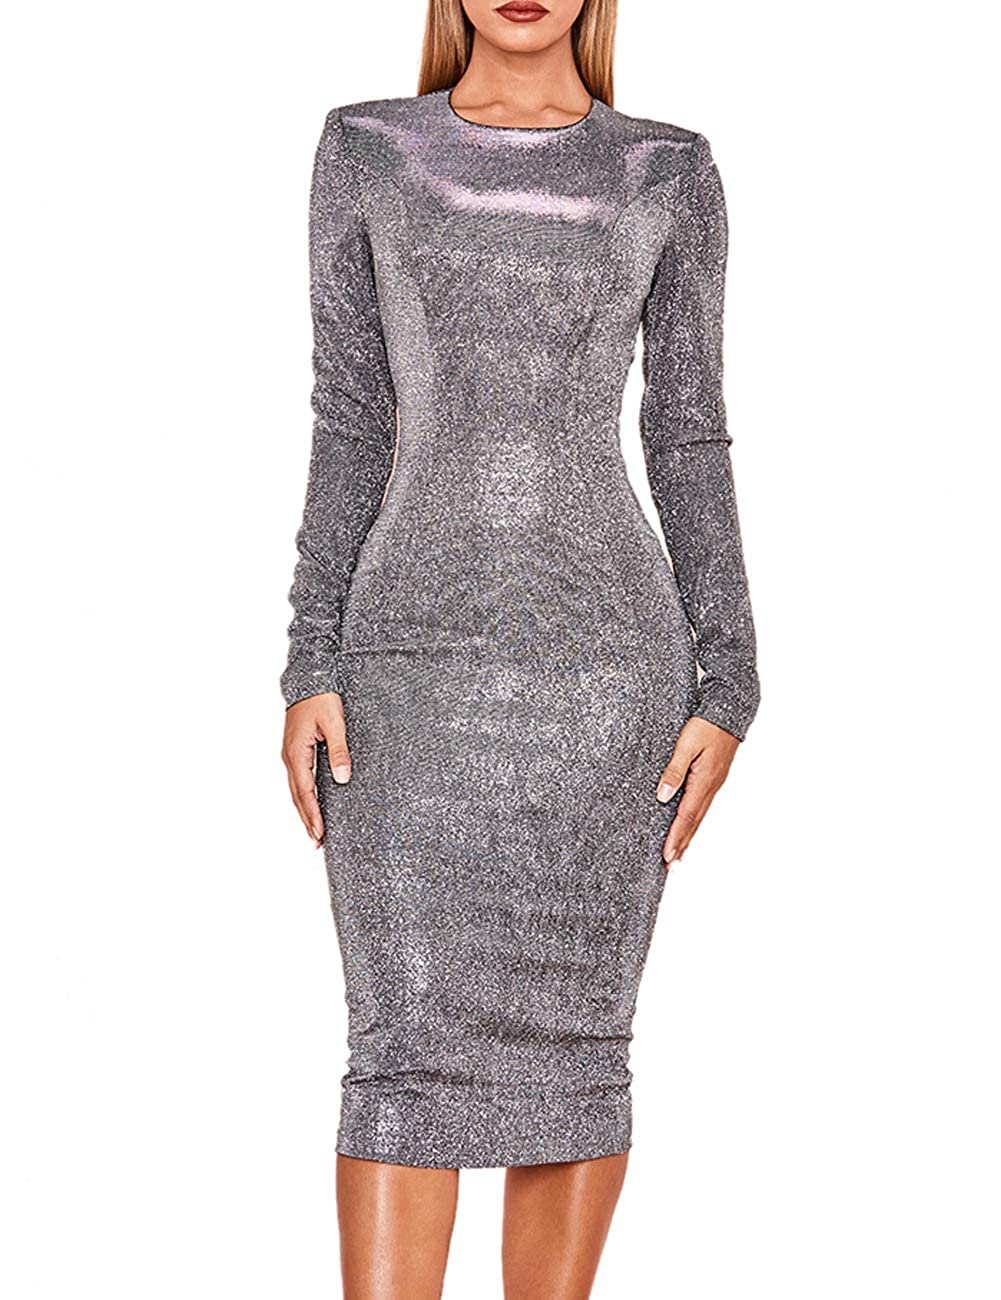 3a87d01e3db Whoinshop Women s Silver Sparkly Long Sleeve Bodycon Party Cocktail Midi  Dress at Amazon Women s Clothing store